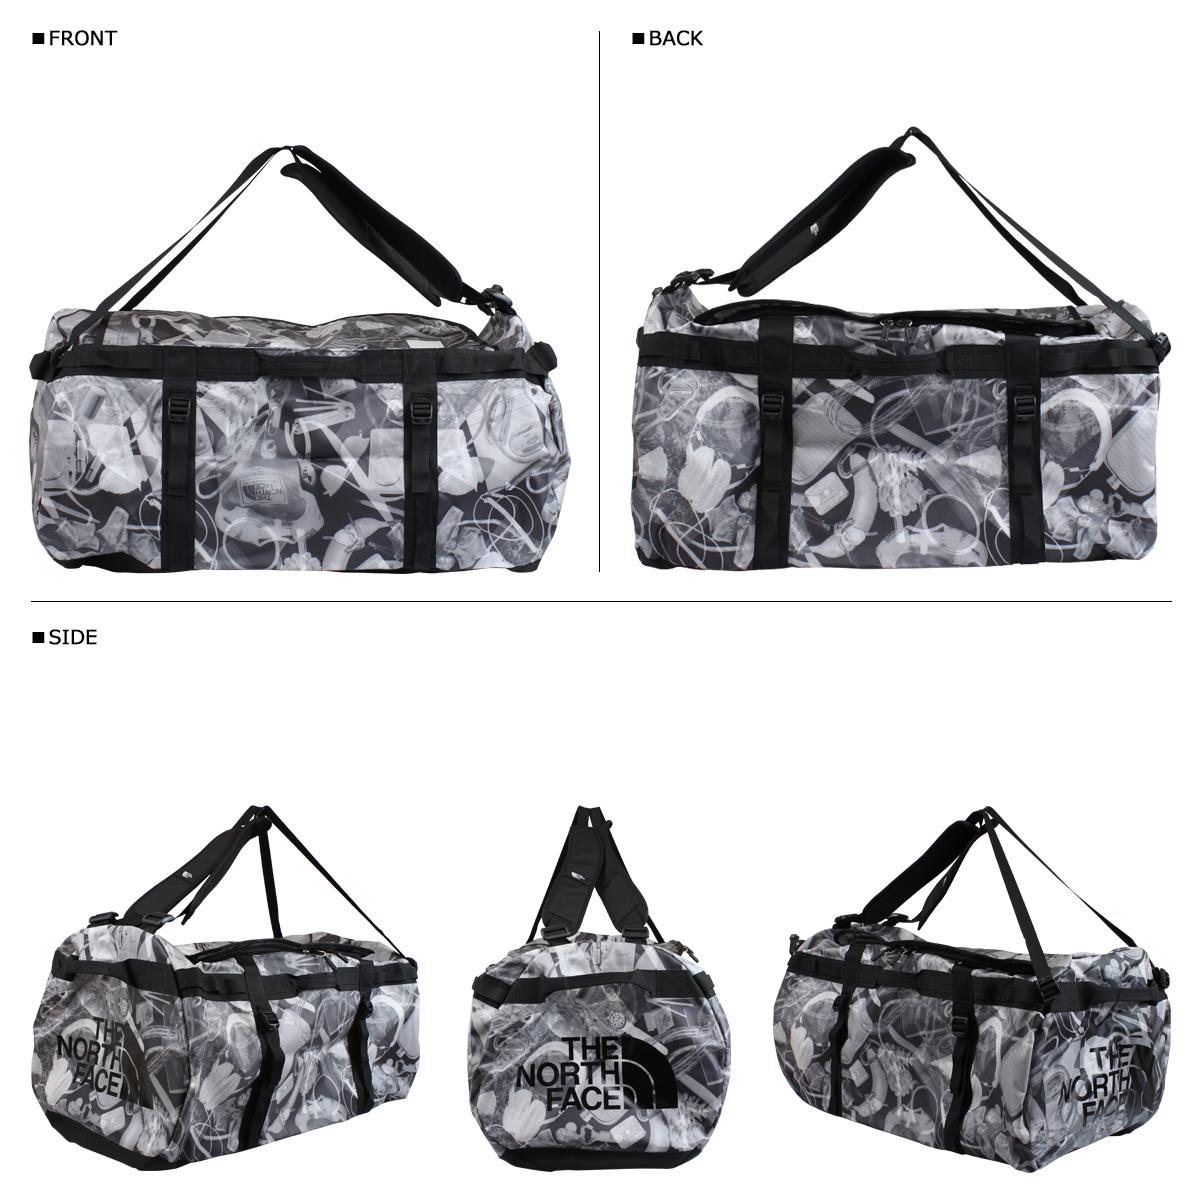 «Soon» «10 7 days stock» north face THE NORTH FACE mens Womens duffle bags  bag CA6V150L BASE CAMP DUFFEL-XXL  10 7 new in stock  d4ff61982f